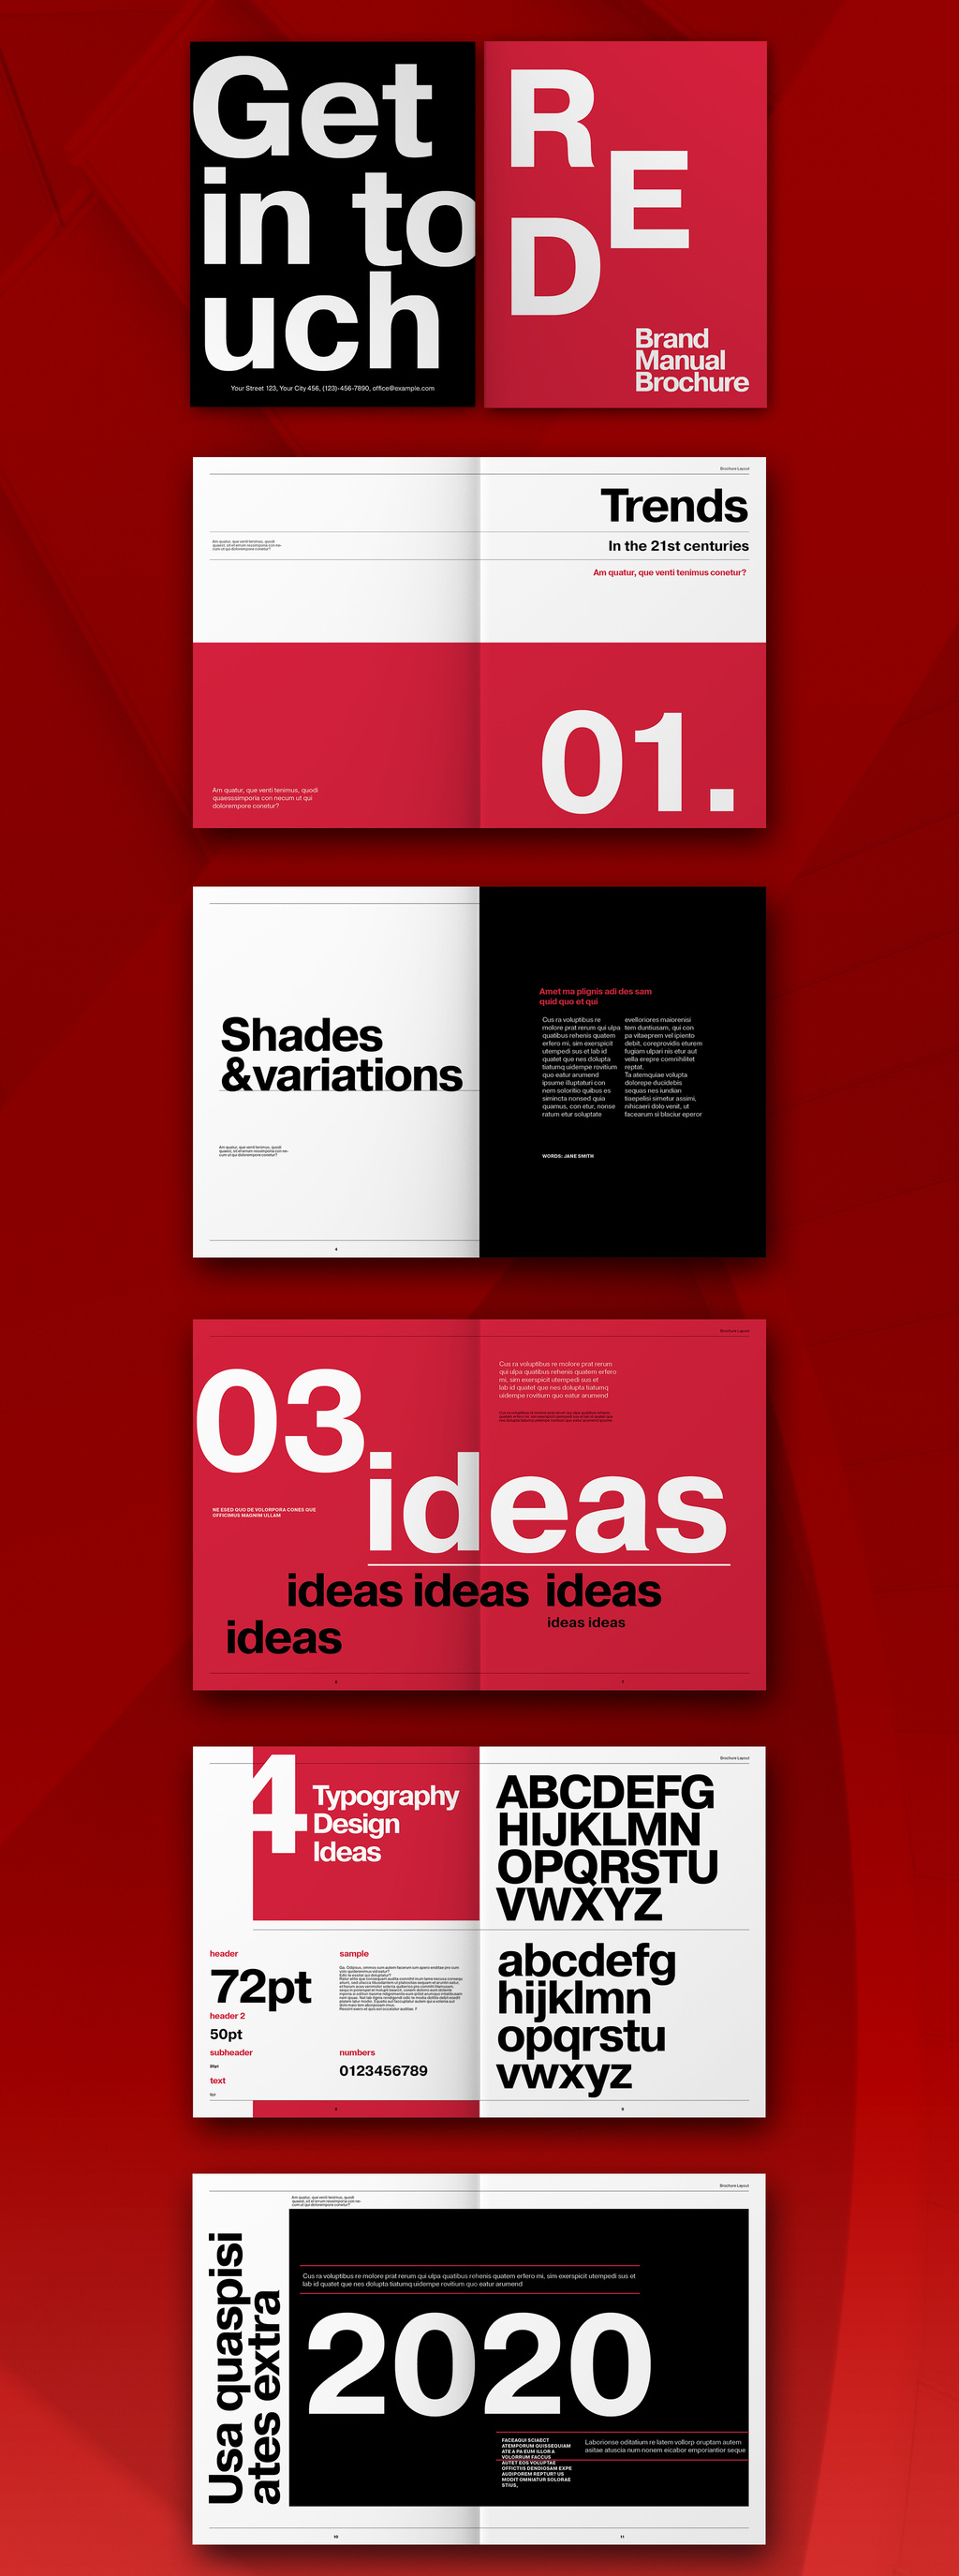 InDesign Brand Manual Template with Bold Typography